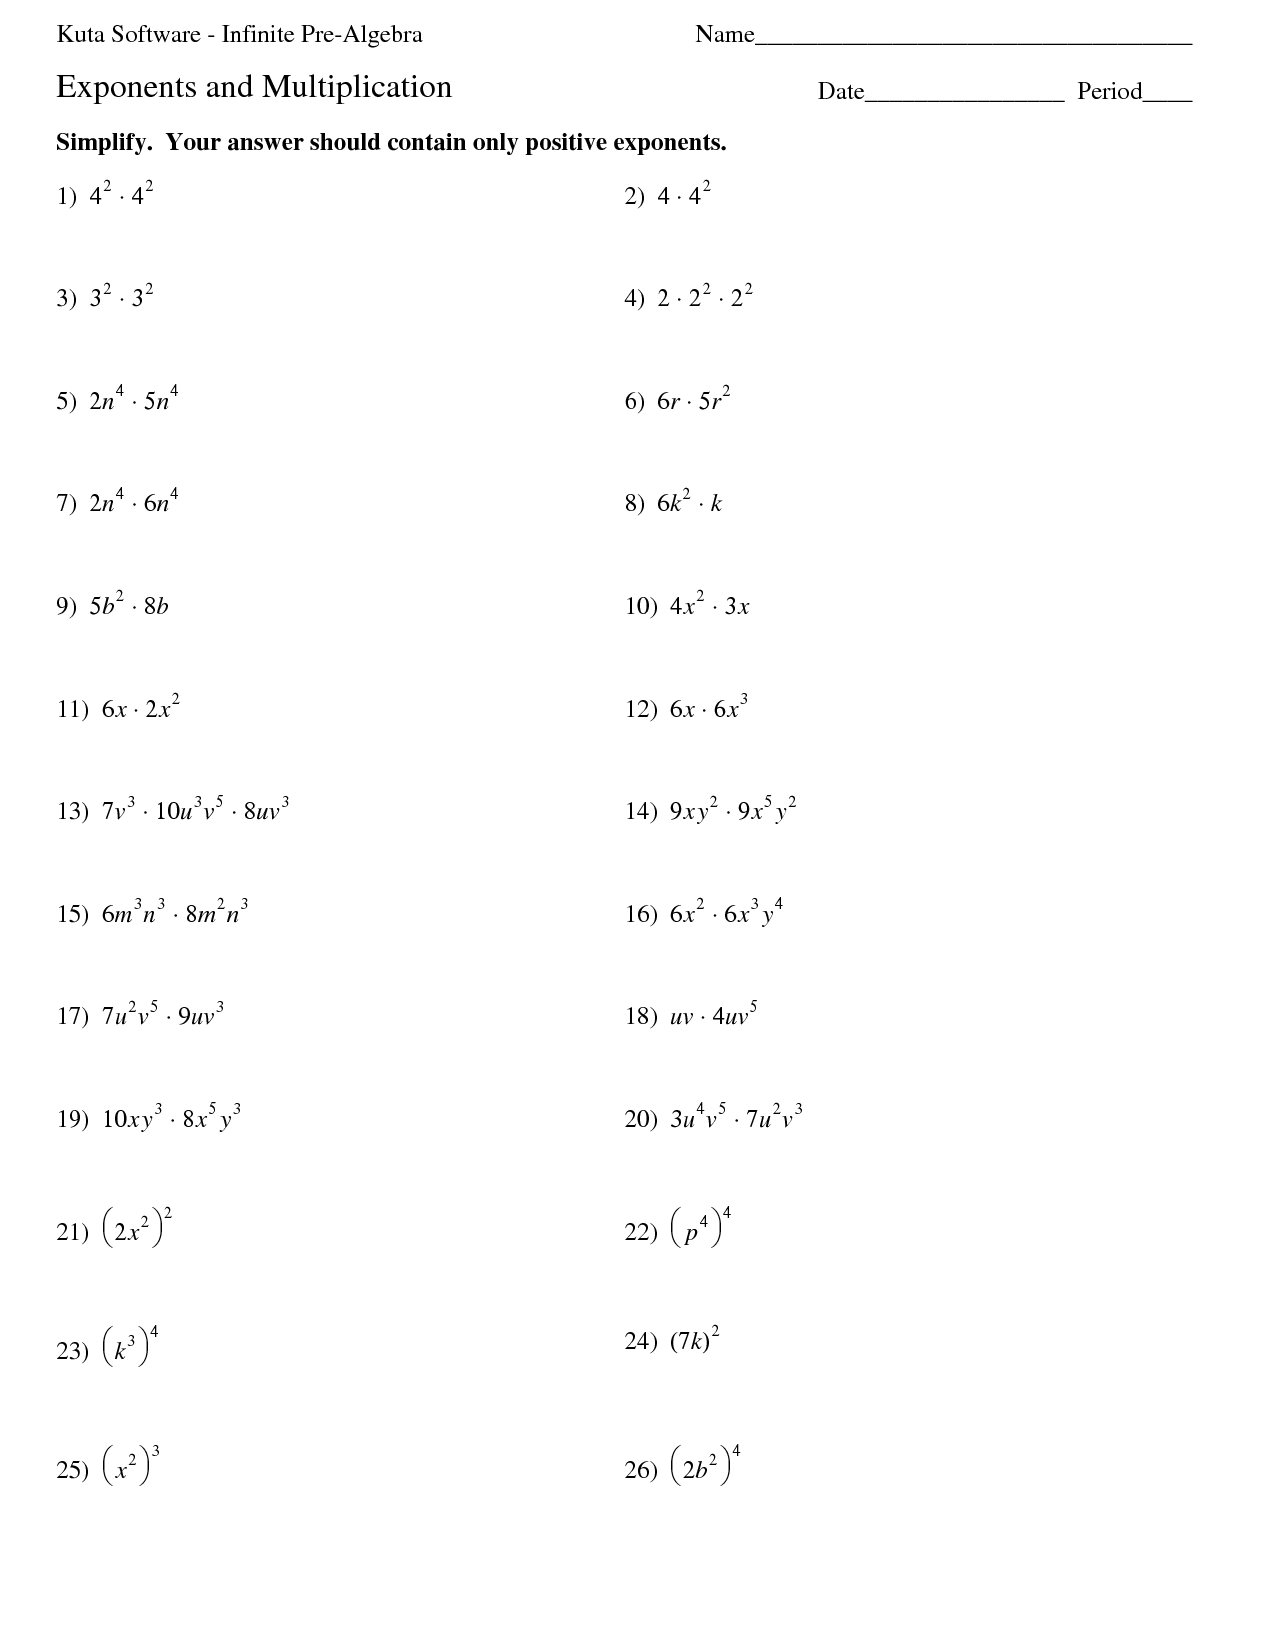 Multiplication Properties Of Exponents Worksheets Answers